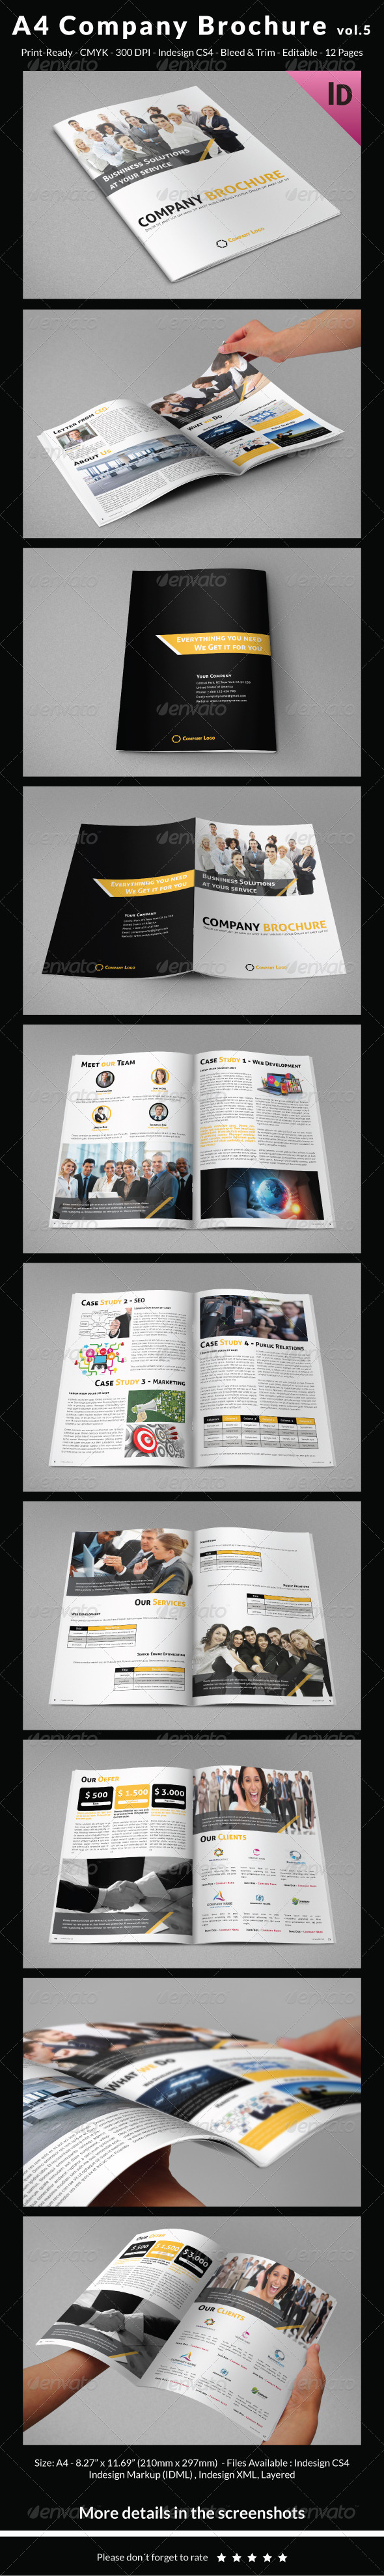 GraphicRiver A4 Company Brochure vol.5 7243484